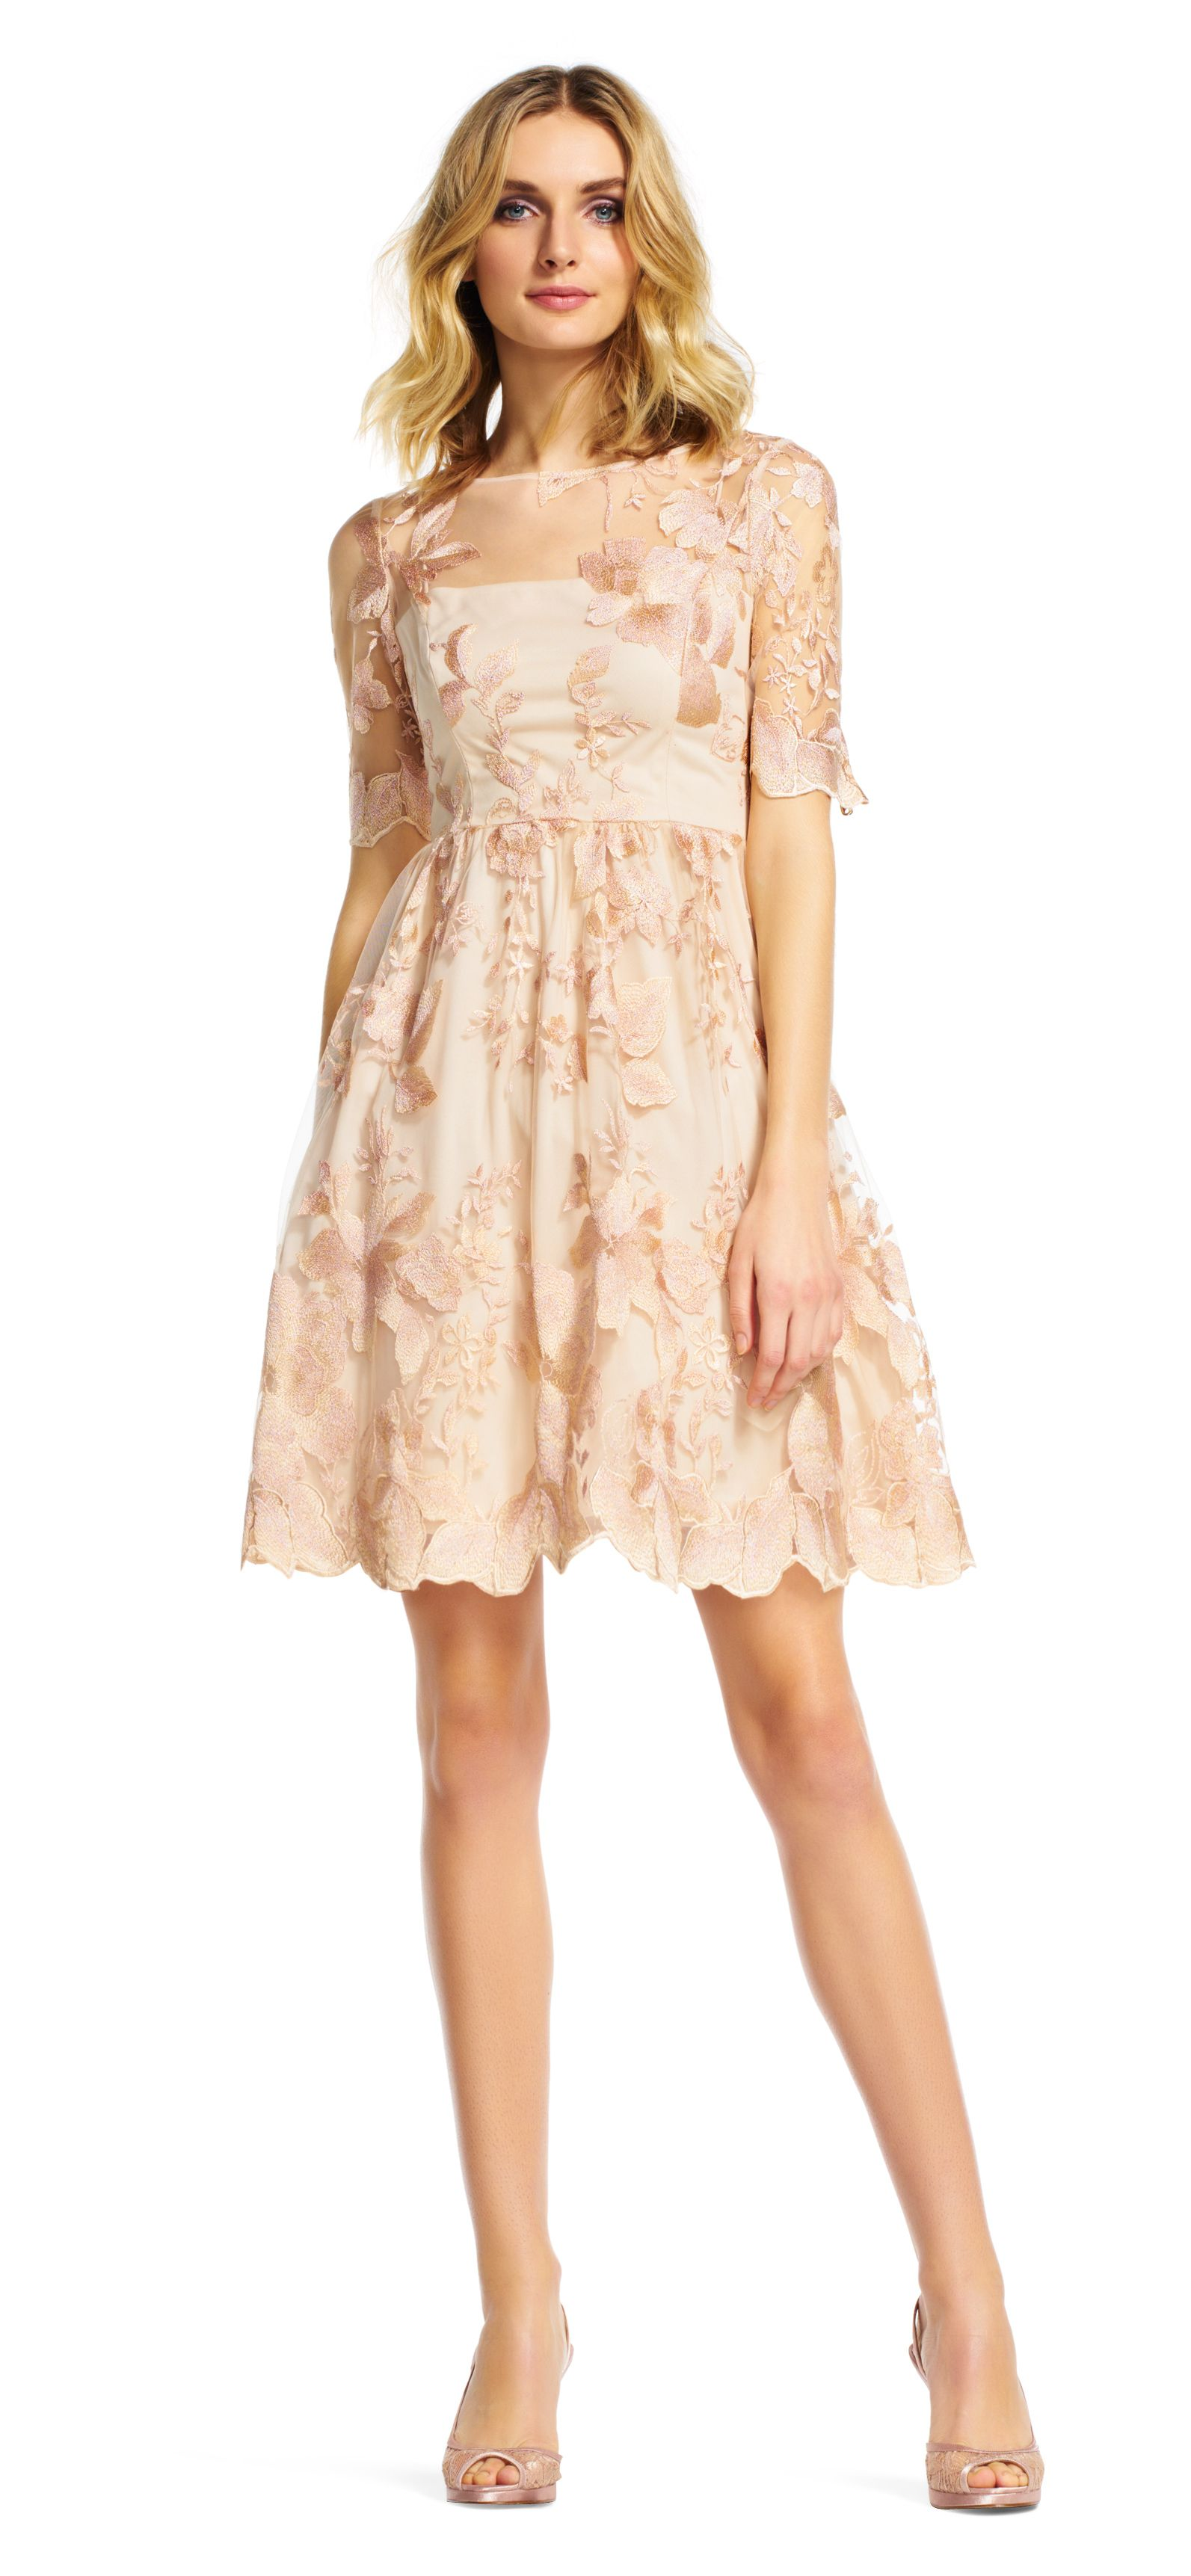 eabce7ad9c6 Sweeten your style with this short party dress. Featuring a fit and flare  silhouette